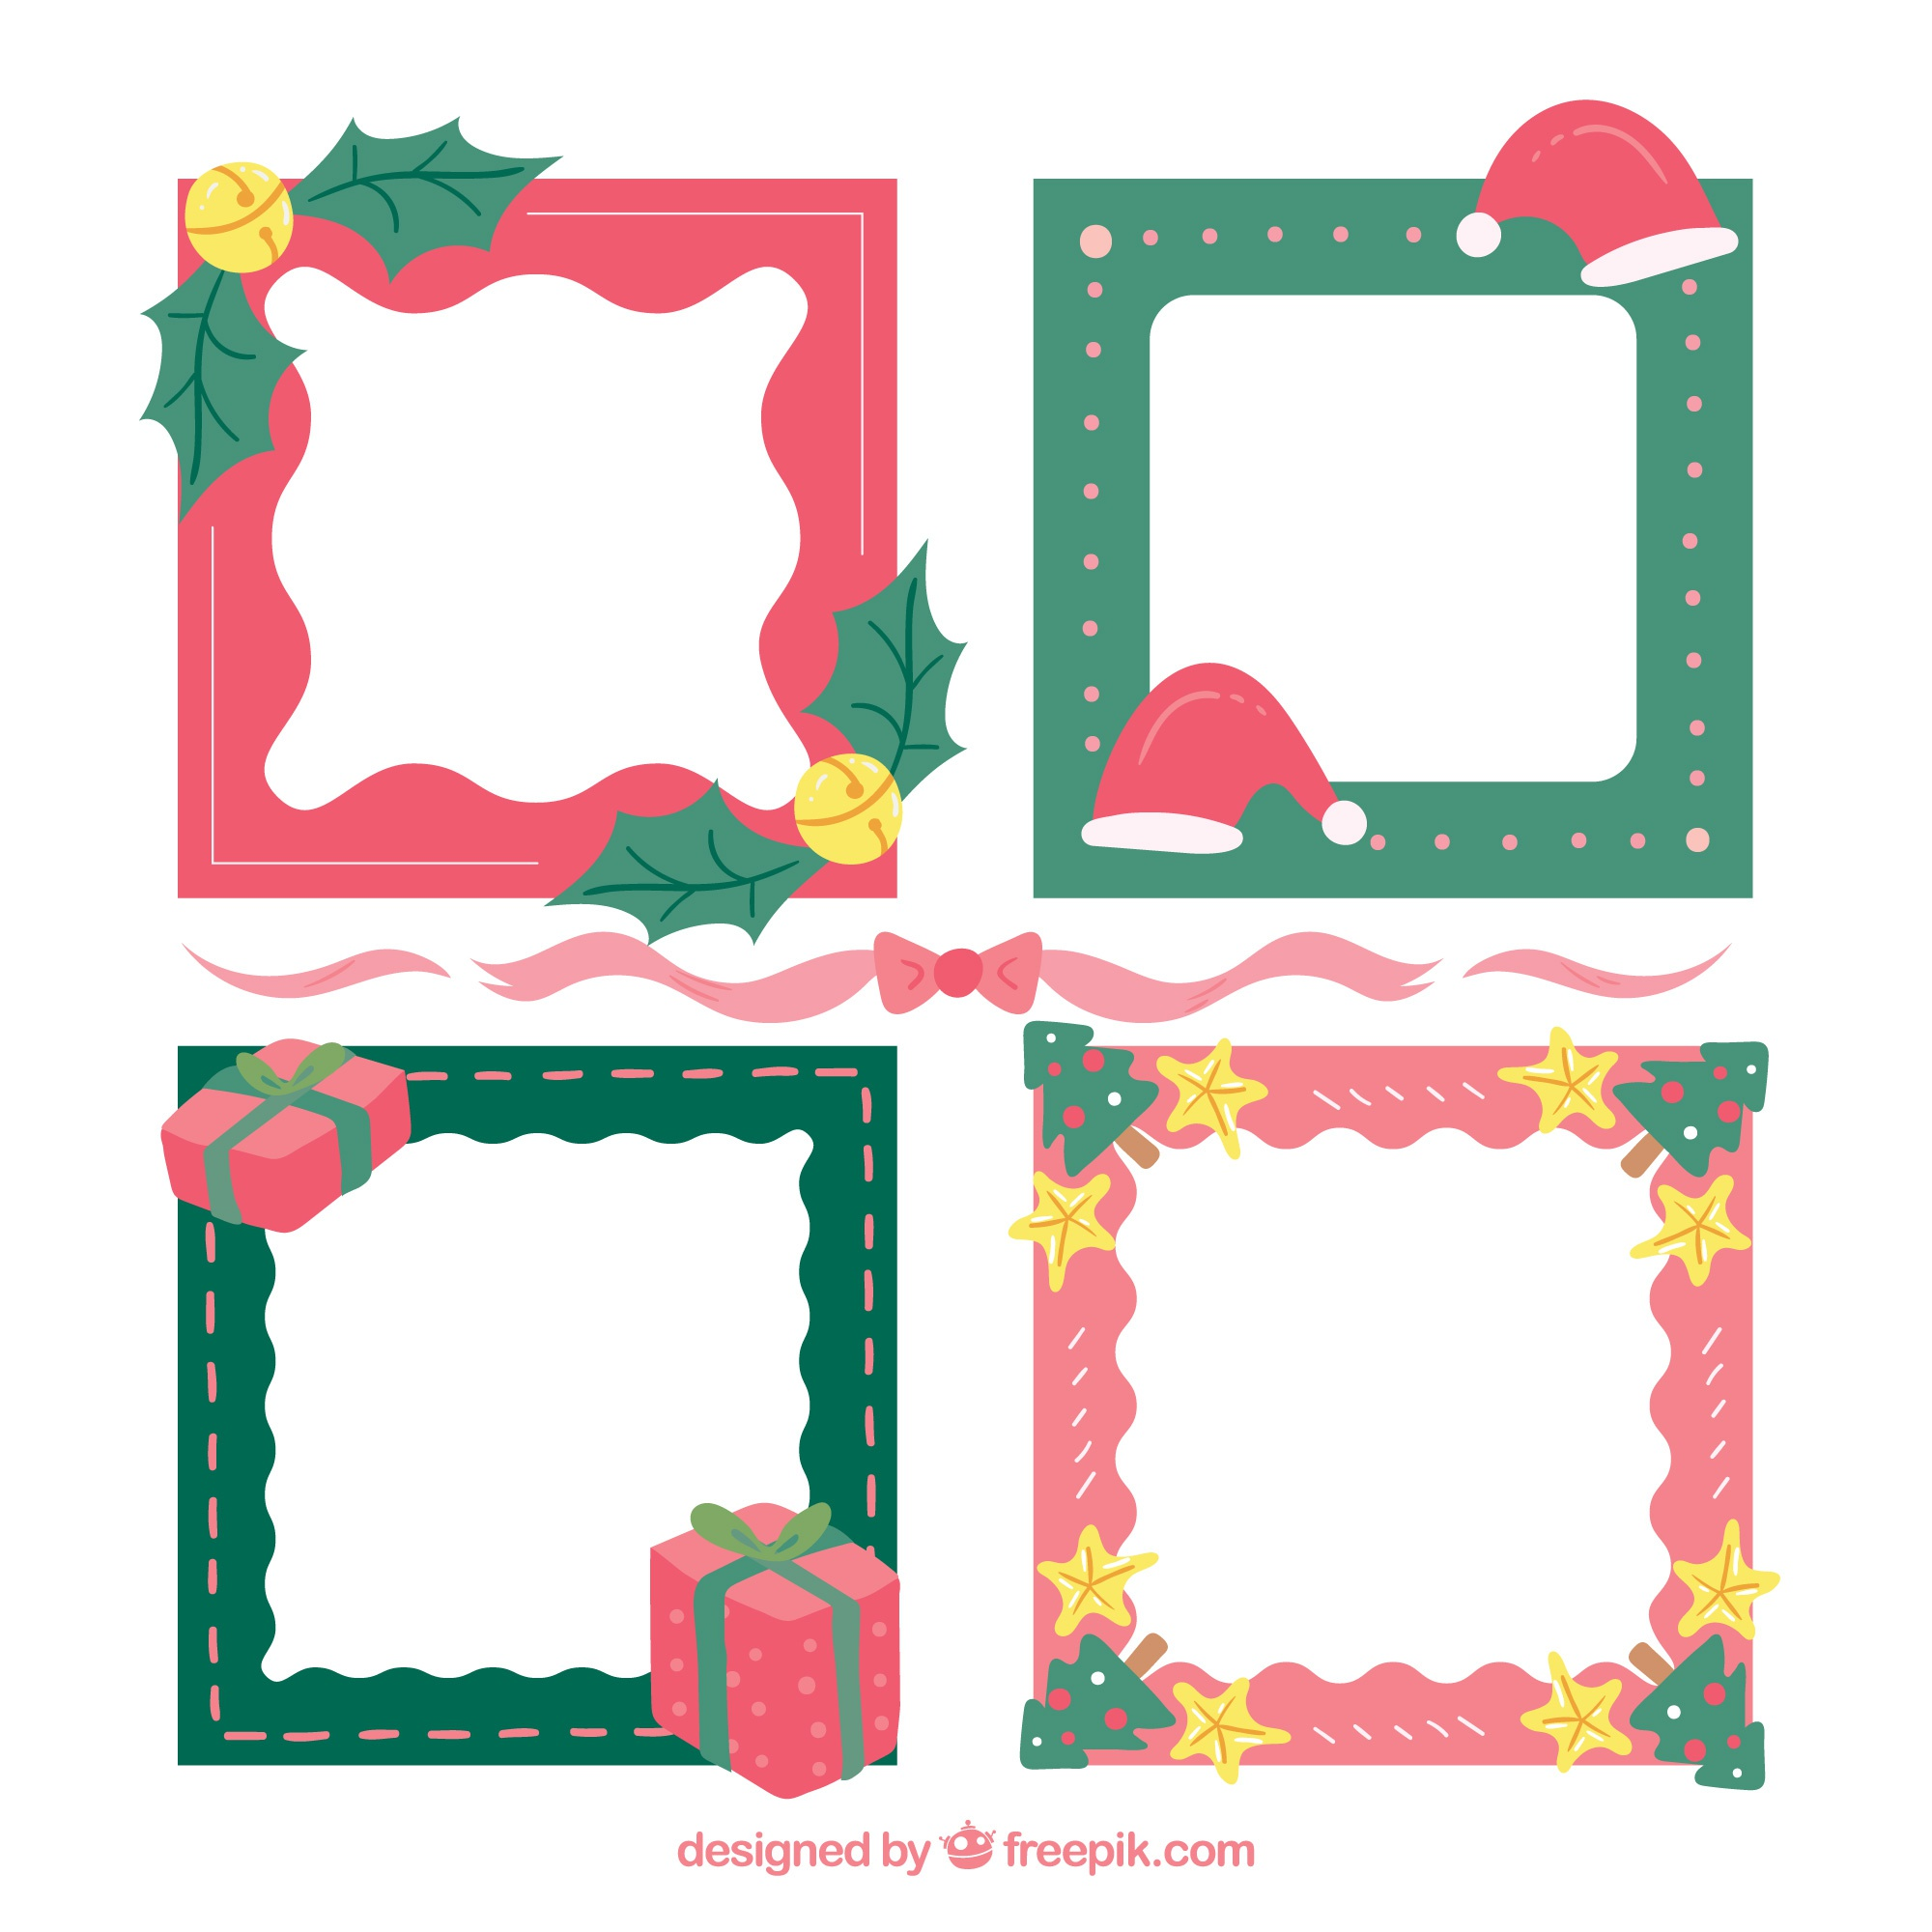 Hand drawn christmas frame collection in green and red